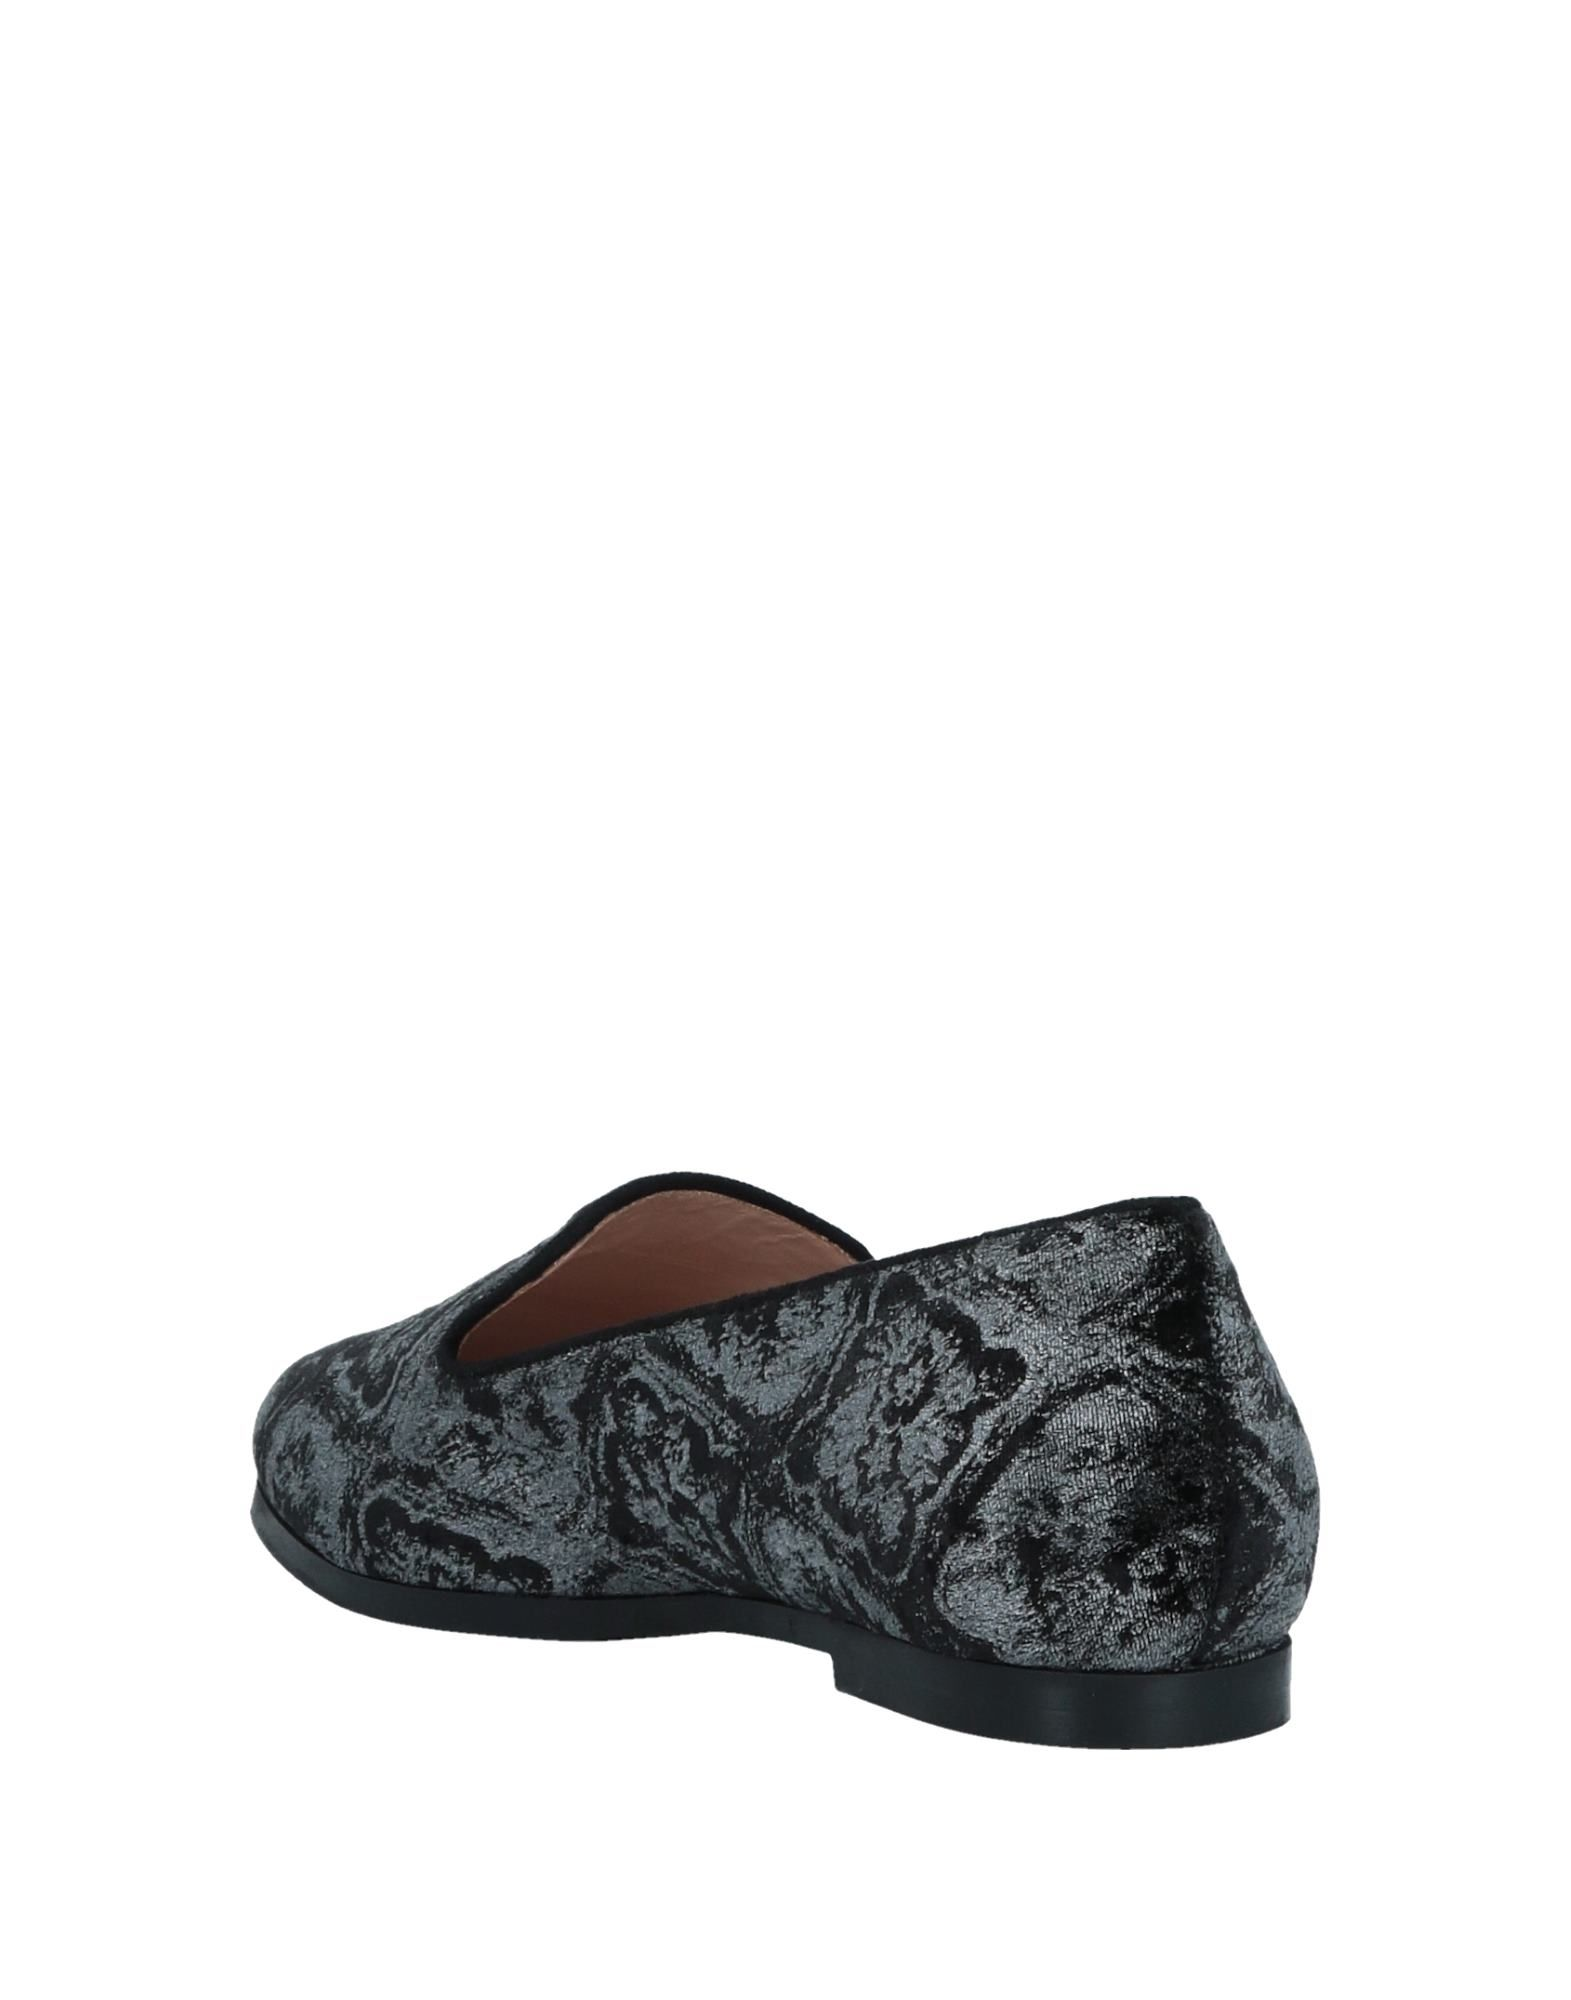 Le Trallerine Loafers - - - Women Le Trallerine Loafers online on  United Kingdom - 11523031MC 8974f4